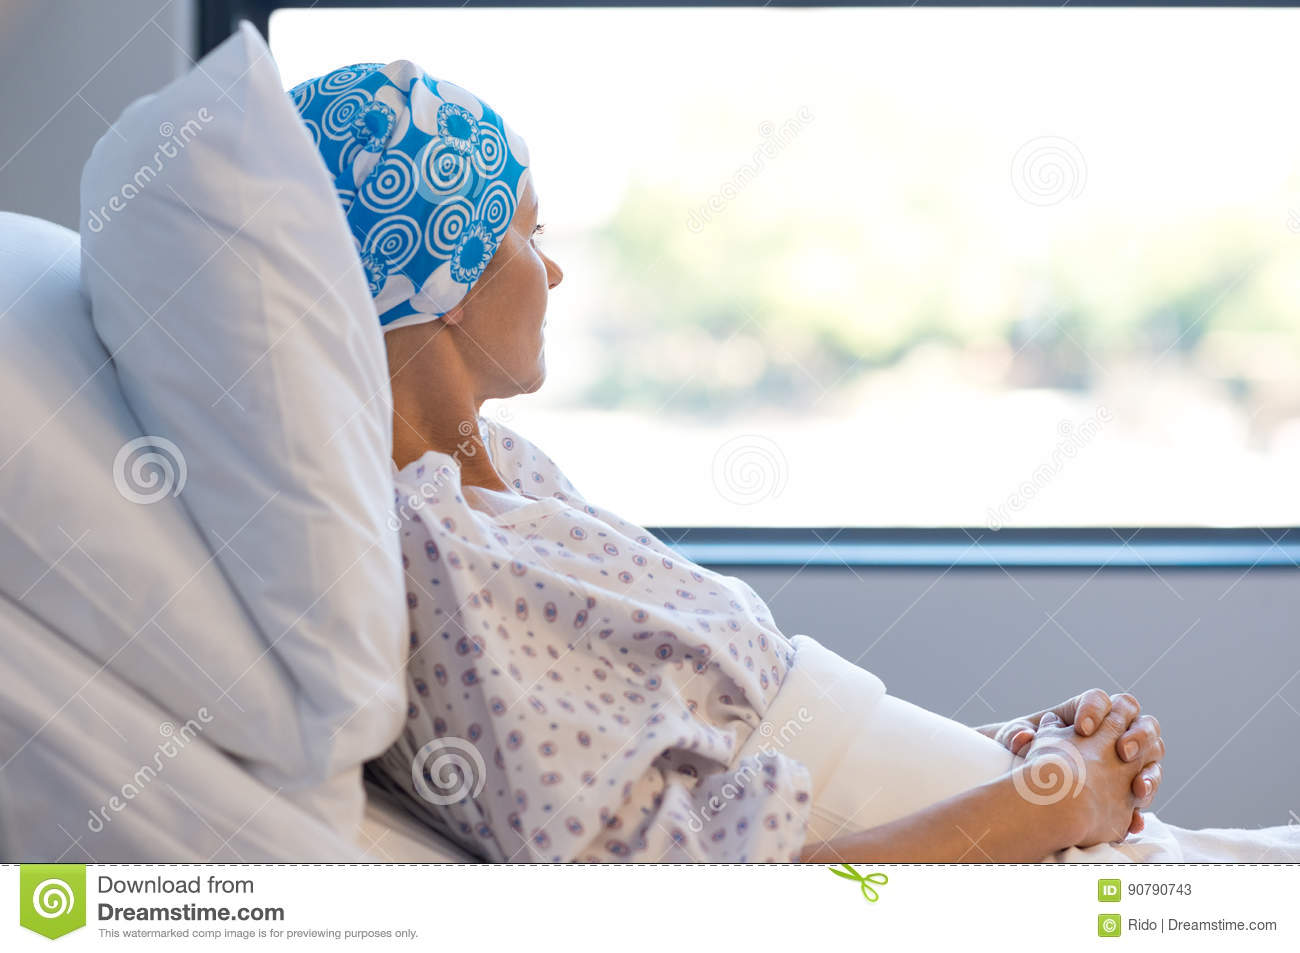 Cancer patient resting